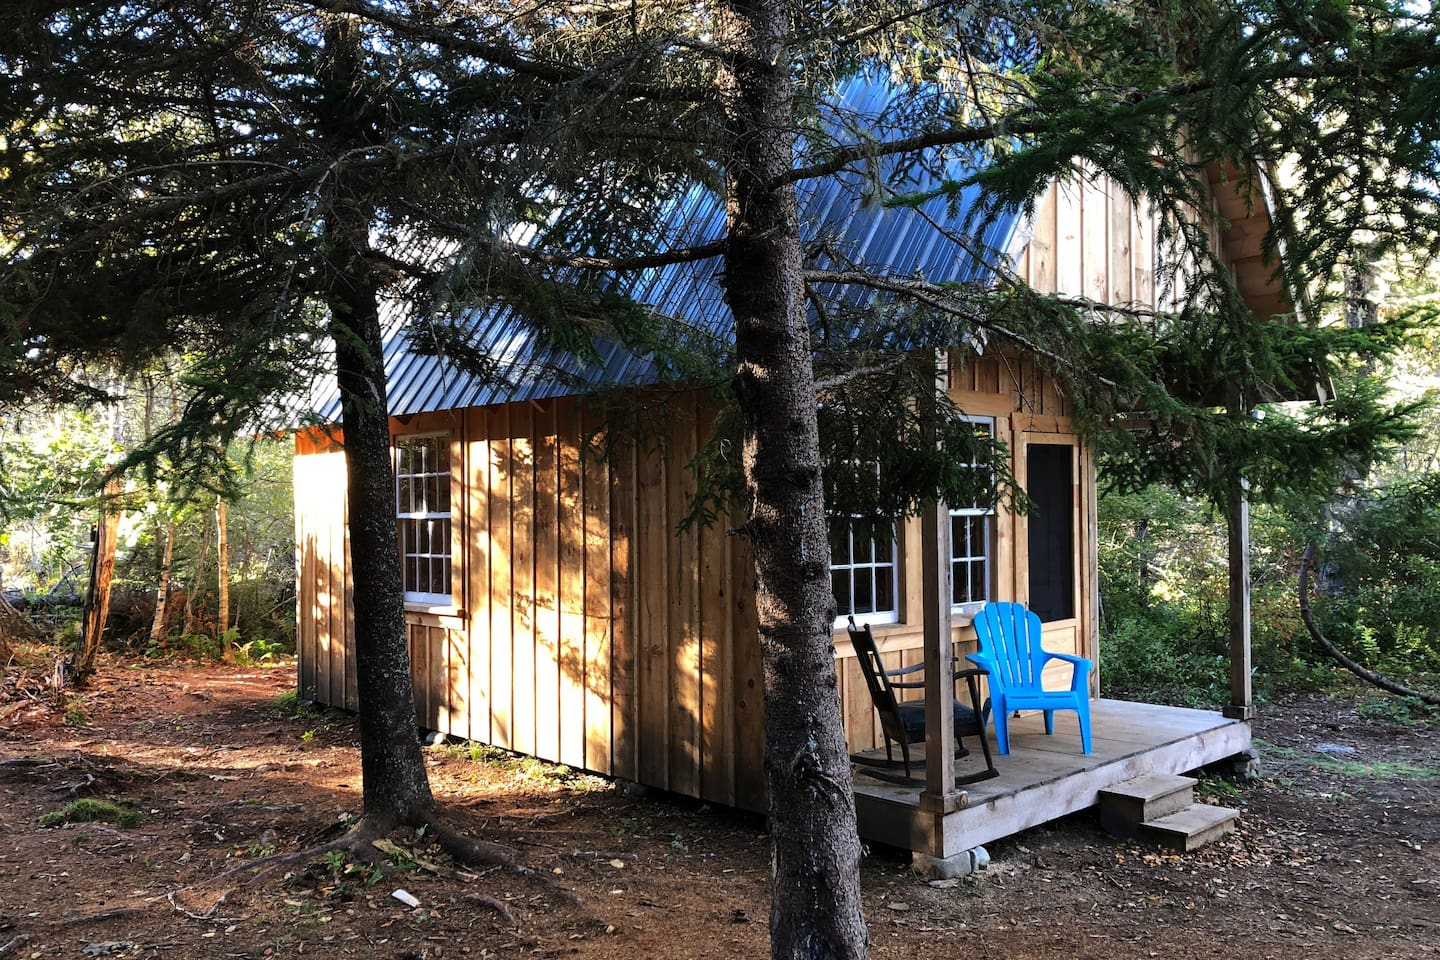 Forest-shaded cabin is located on east side of Long Island in Friendship, Maine (Muscongus Bay), a short boat ride (.75 miles) from town landing/parking on beautiful Friendship Harbor. From front porch of the cabin to high-tide water's edge is about 80 feet.